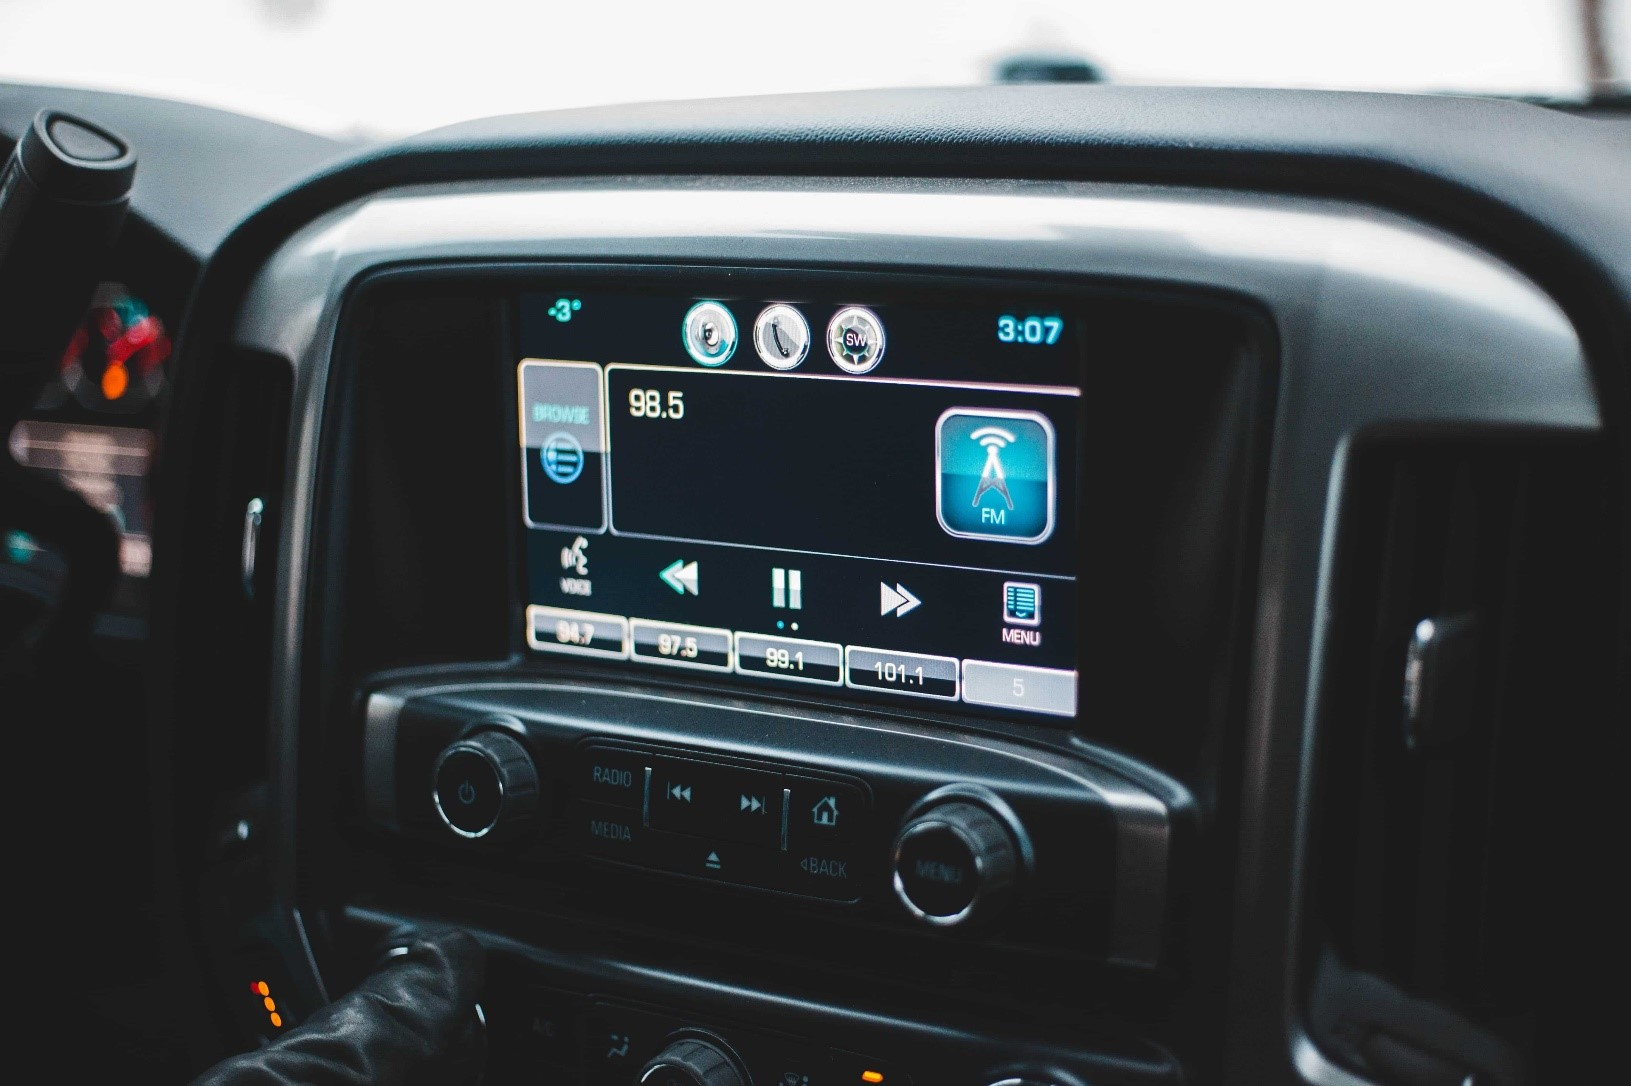 A close-up shot of a car's stereo and navigation system.